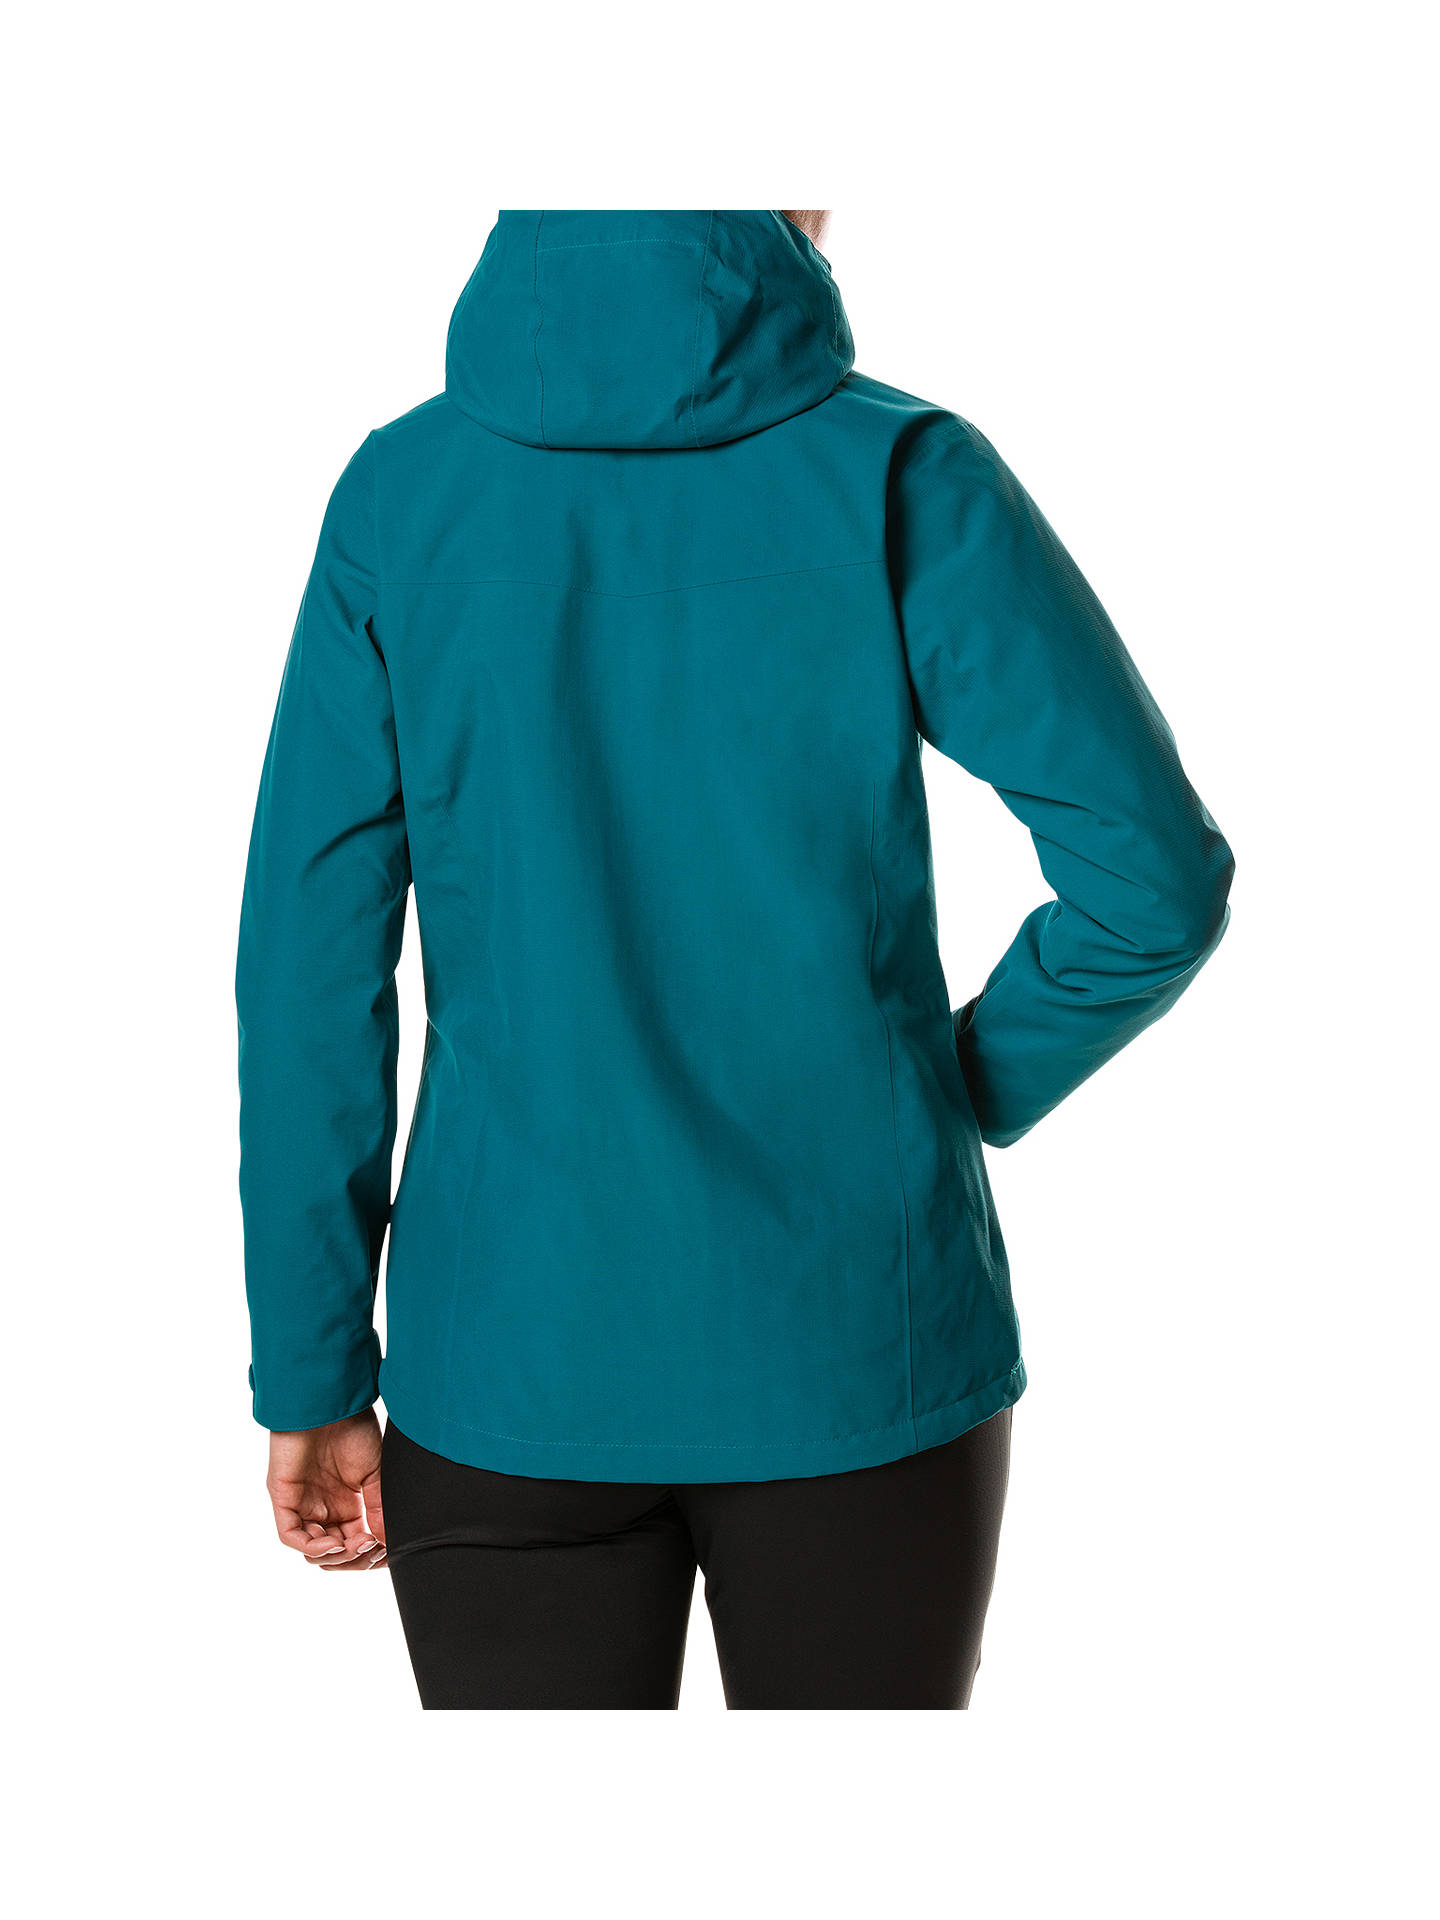 BuyBerghaus Hillwalker Women's Waterproof Jacket, Deep Lagoon, 8 Online at johnlewis.com